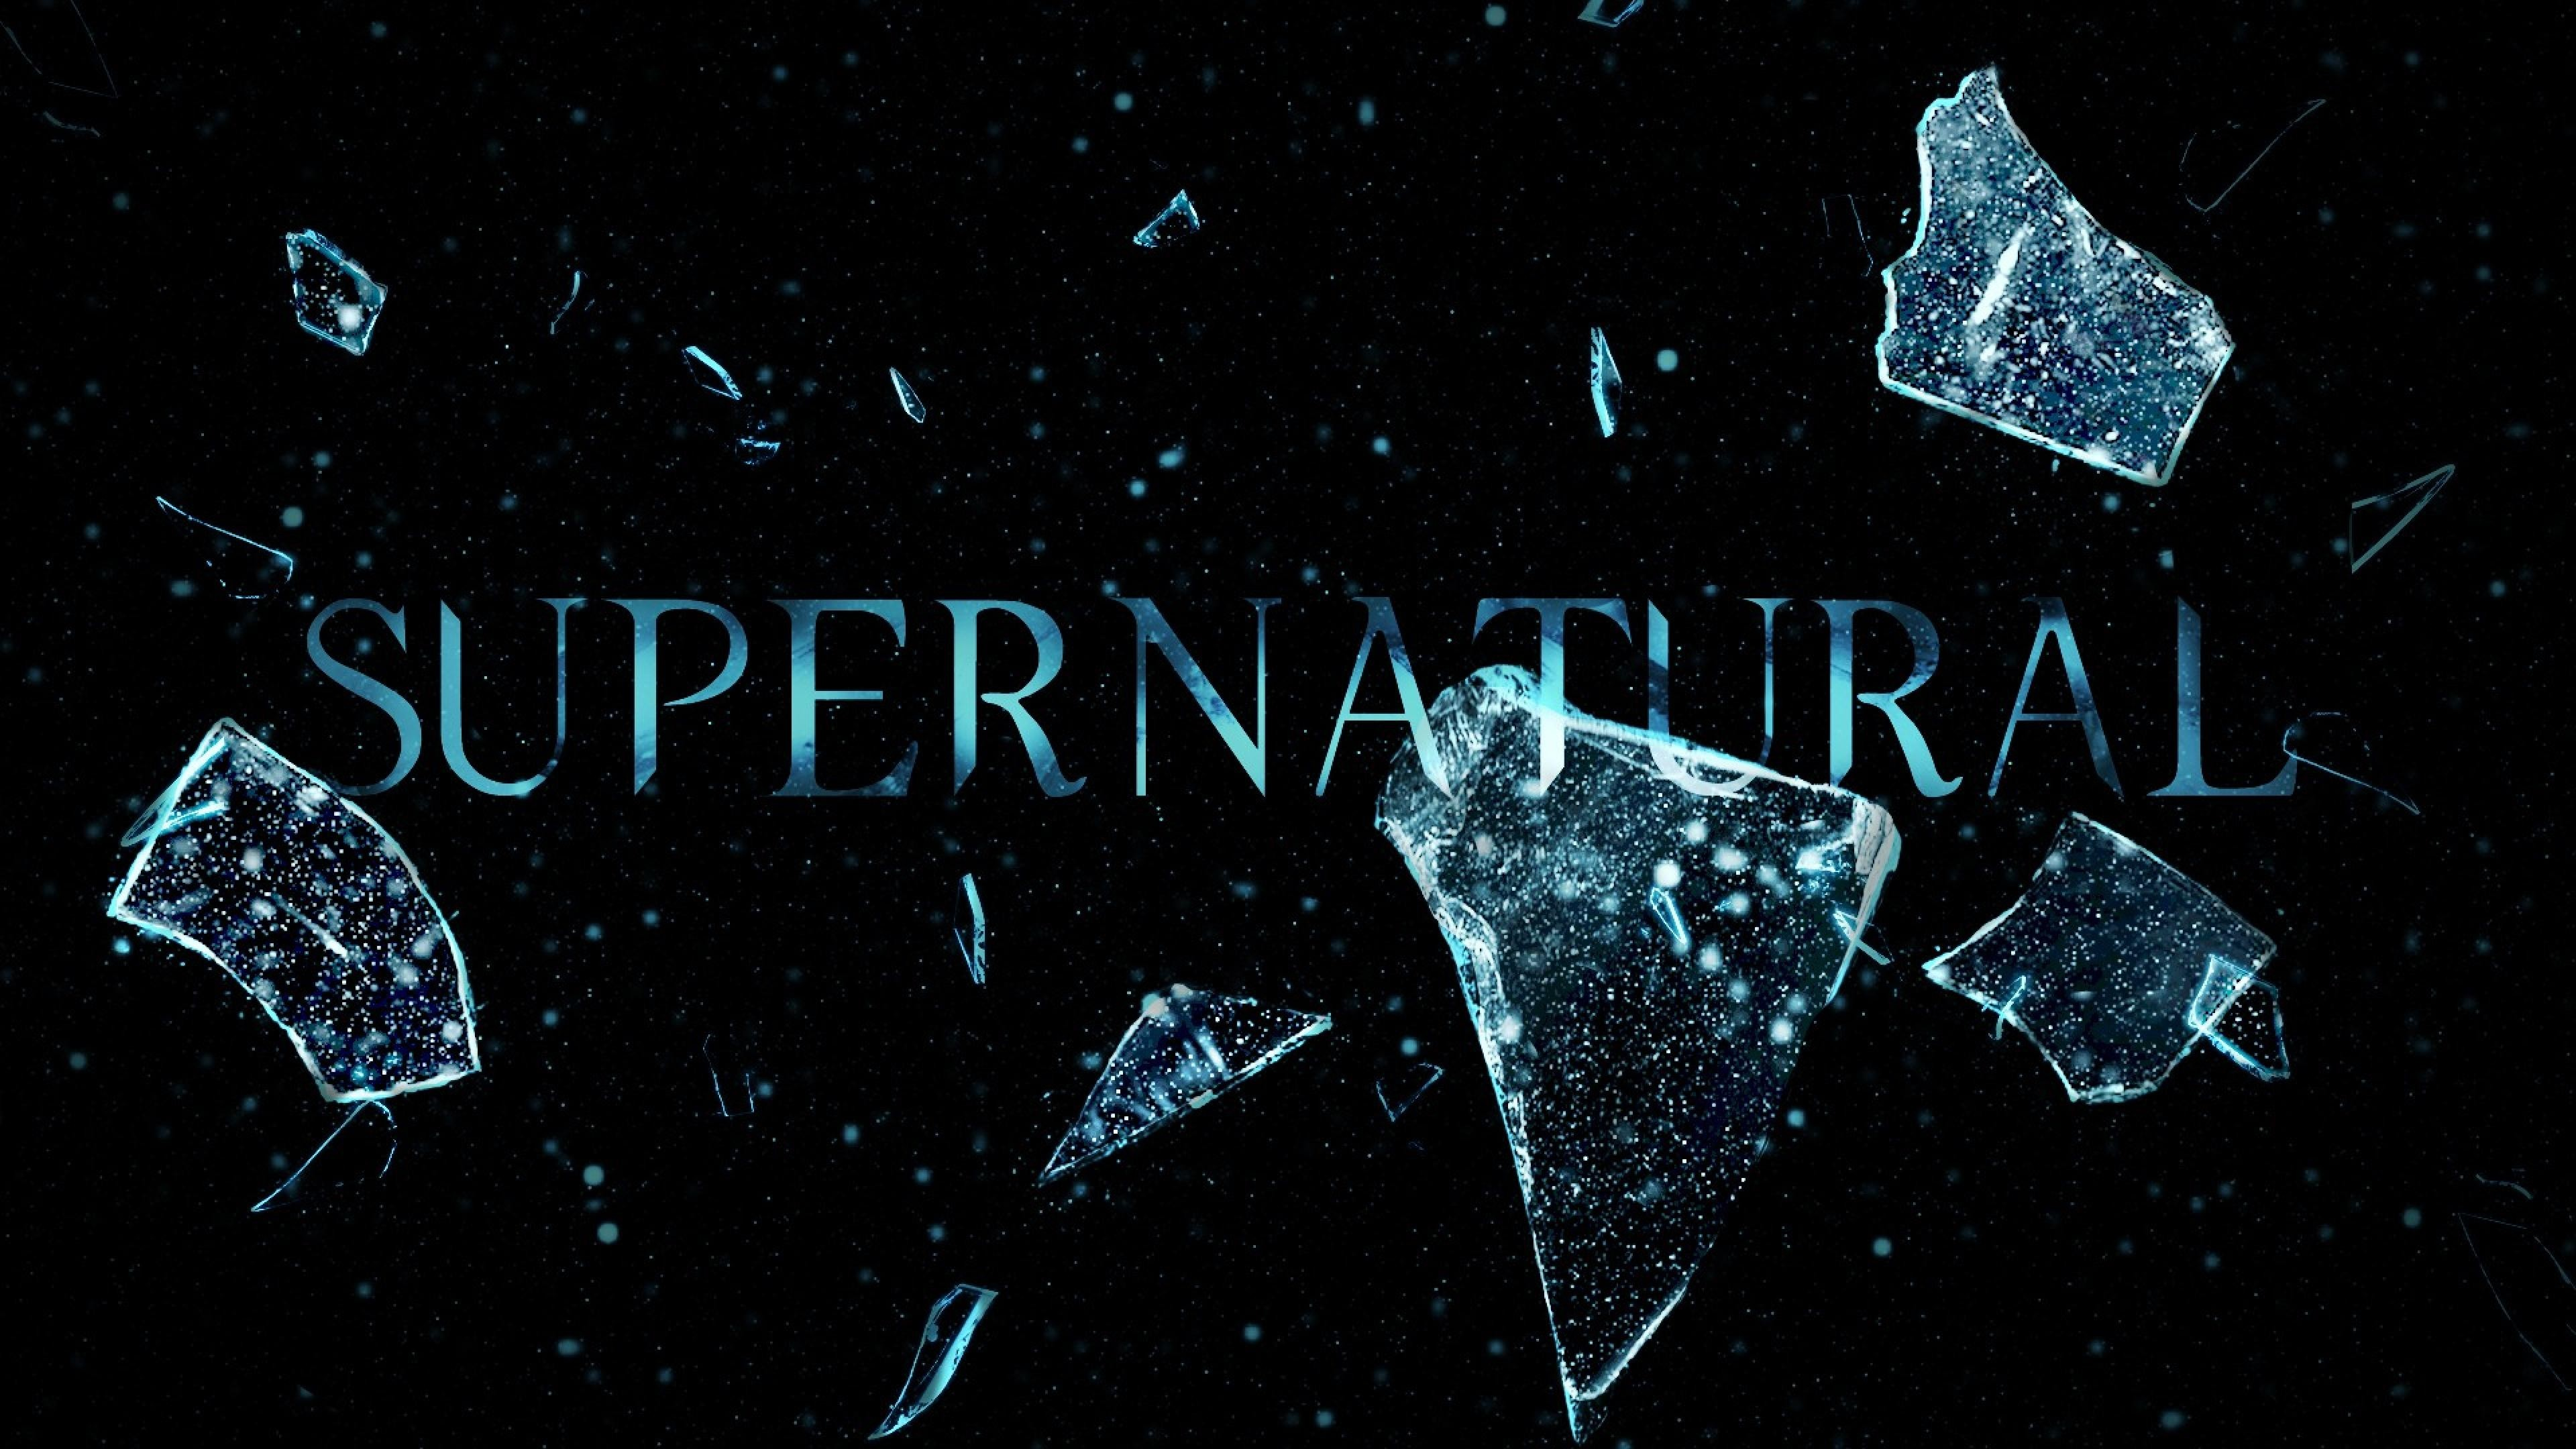 3840x2160 Supernatural free uhd backgrounds